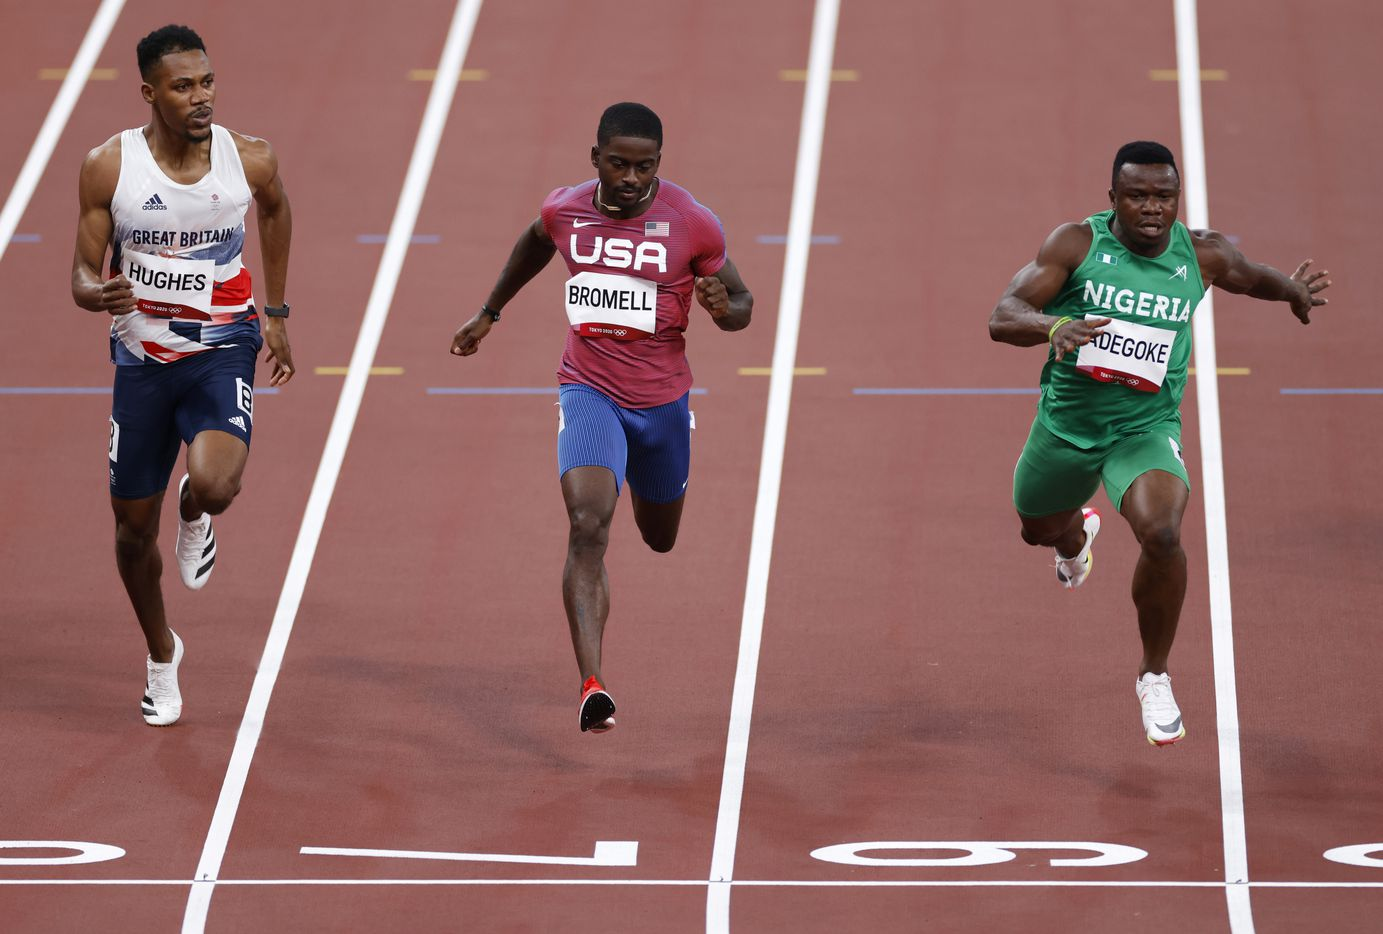 Great Britain's Zharnel Hughes, USA's Trayvon Bromell, and Nigeria's Enoch Adegoke race to the finish in the 100 meter qualifying race during the postponed 2020 Tokyo Olympics at Olympic Stadium, on Saturday, July 31, 2021, in Tokyo, Japan. Bromell finished fourth with a time of 10.04. (Vernon Bryant/The Dallas Morning News)